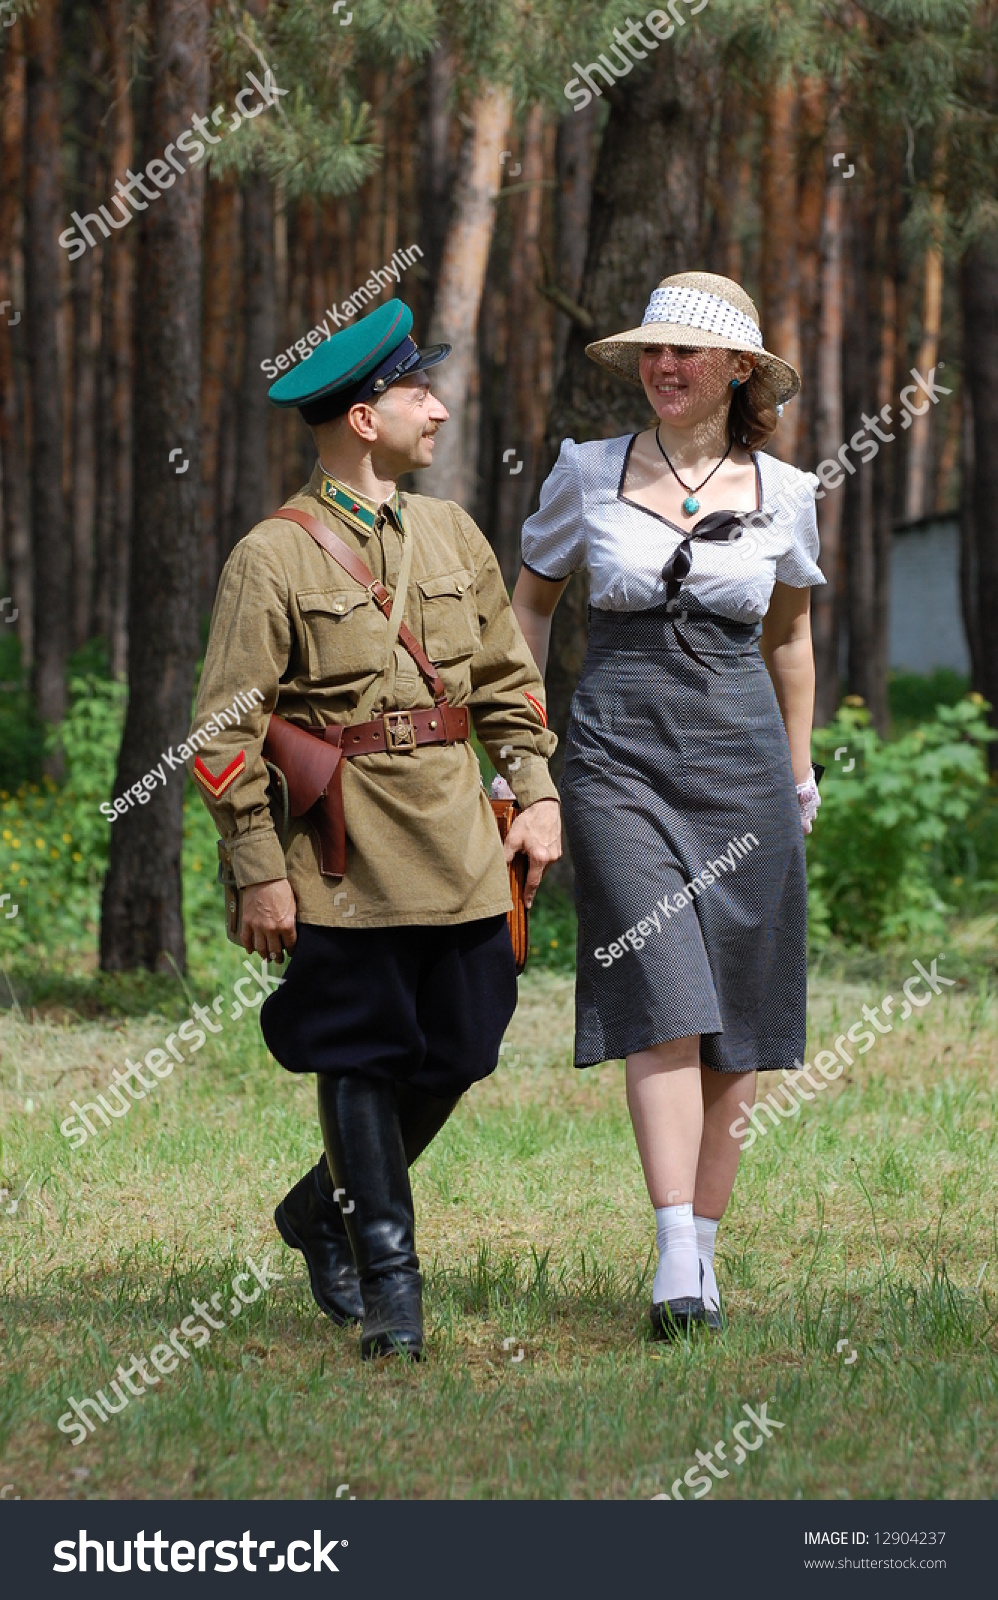 Red Army Officer Girl Ww2 Reenacting Stock Photo (Edit Now